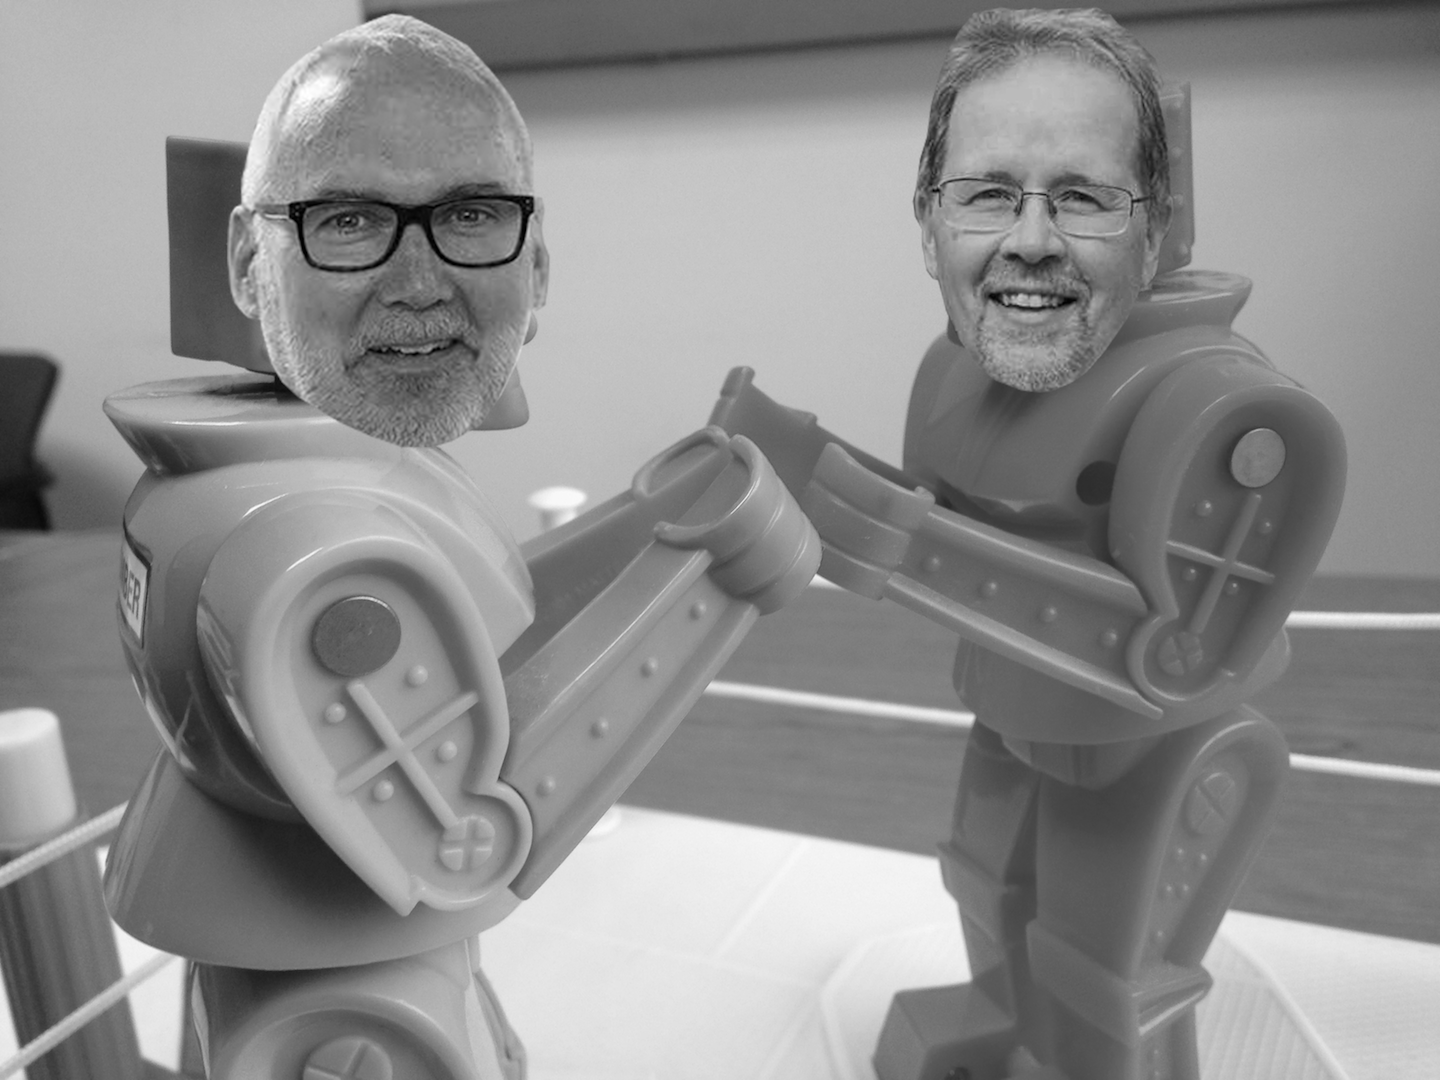 The faces of Keith Graber Miller and John Roth photoshopped onto the bodies of battling robots